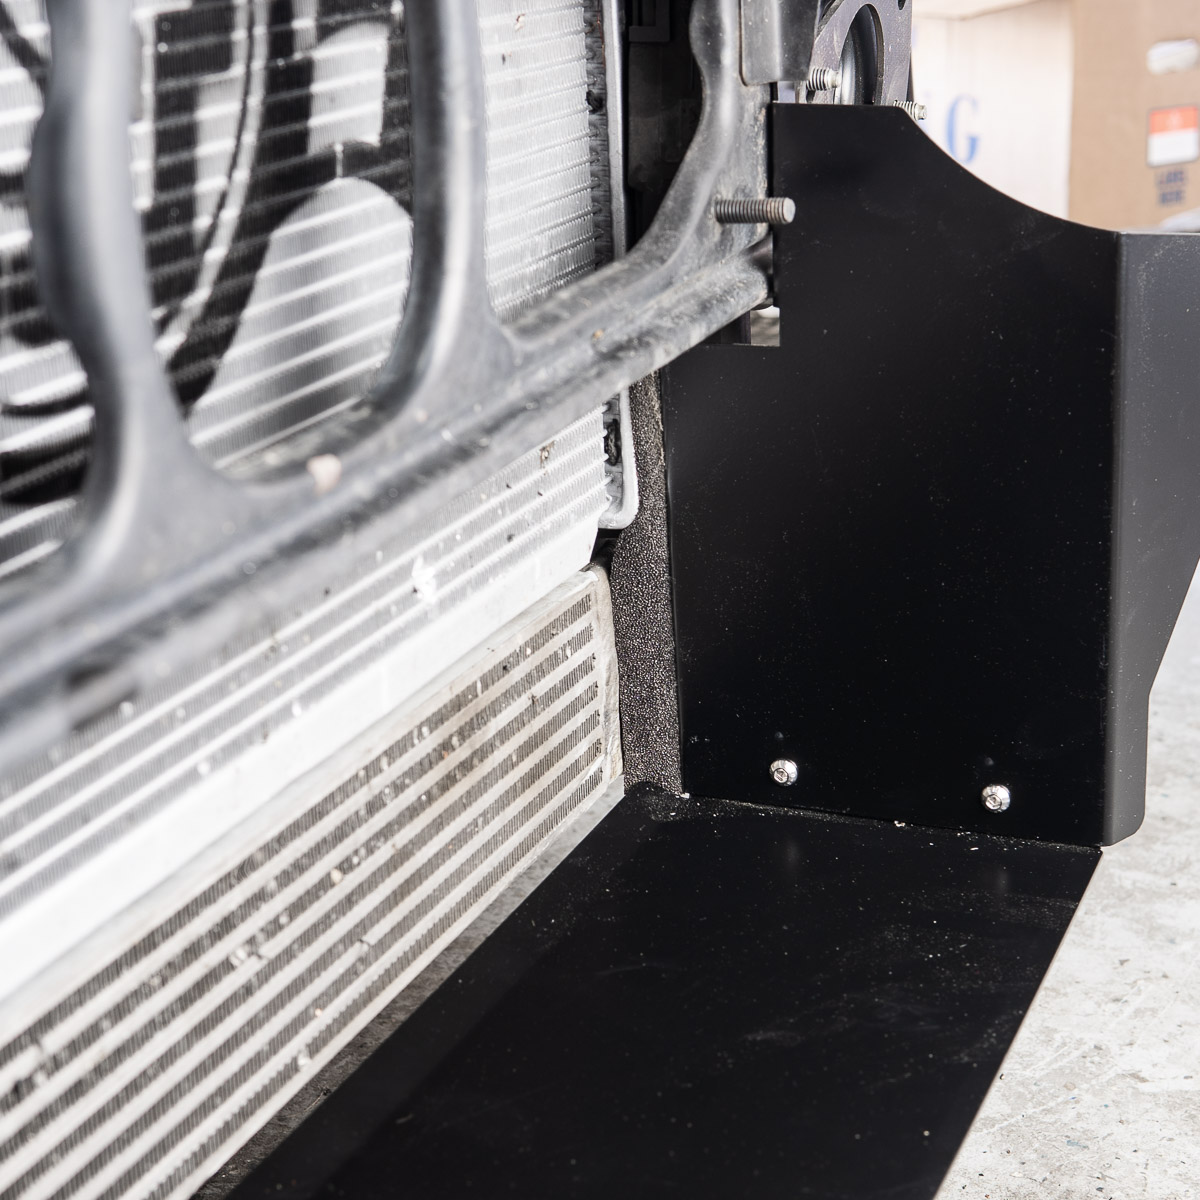 BMW E46 M3 Radiator Duct - Buildjournal